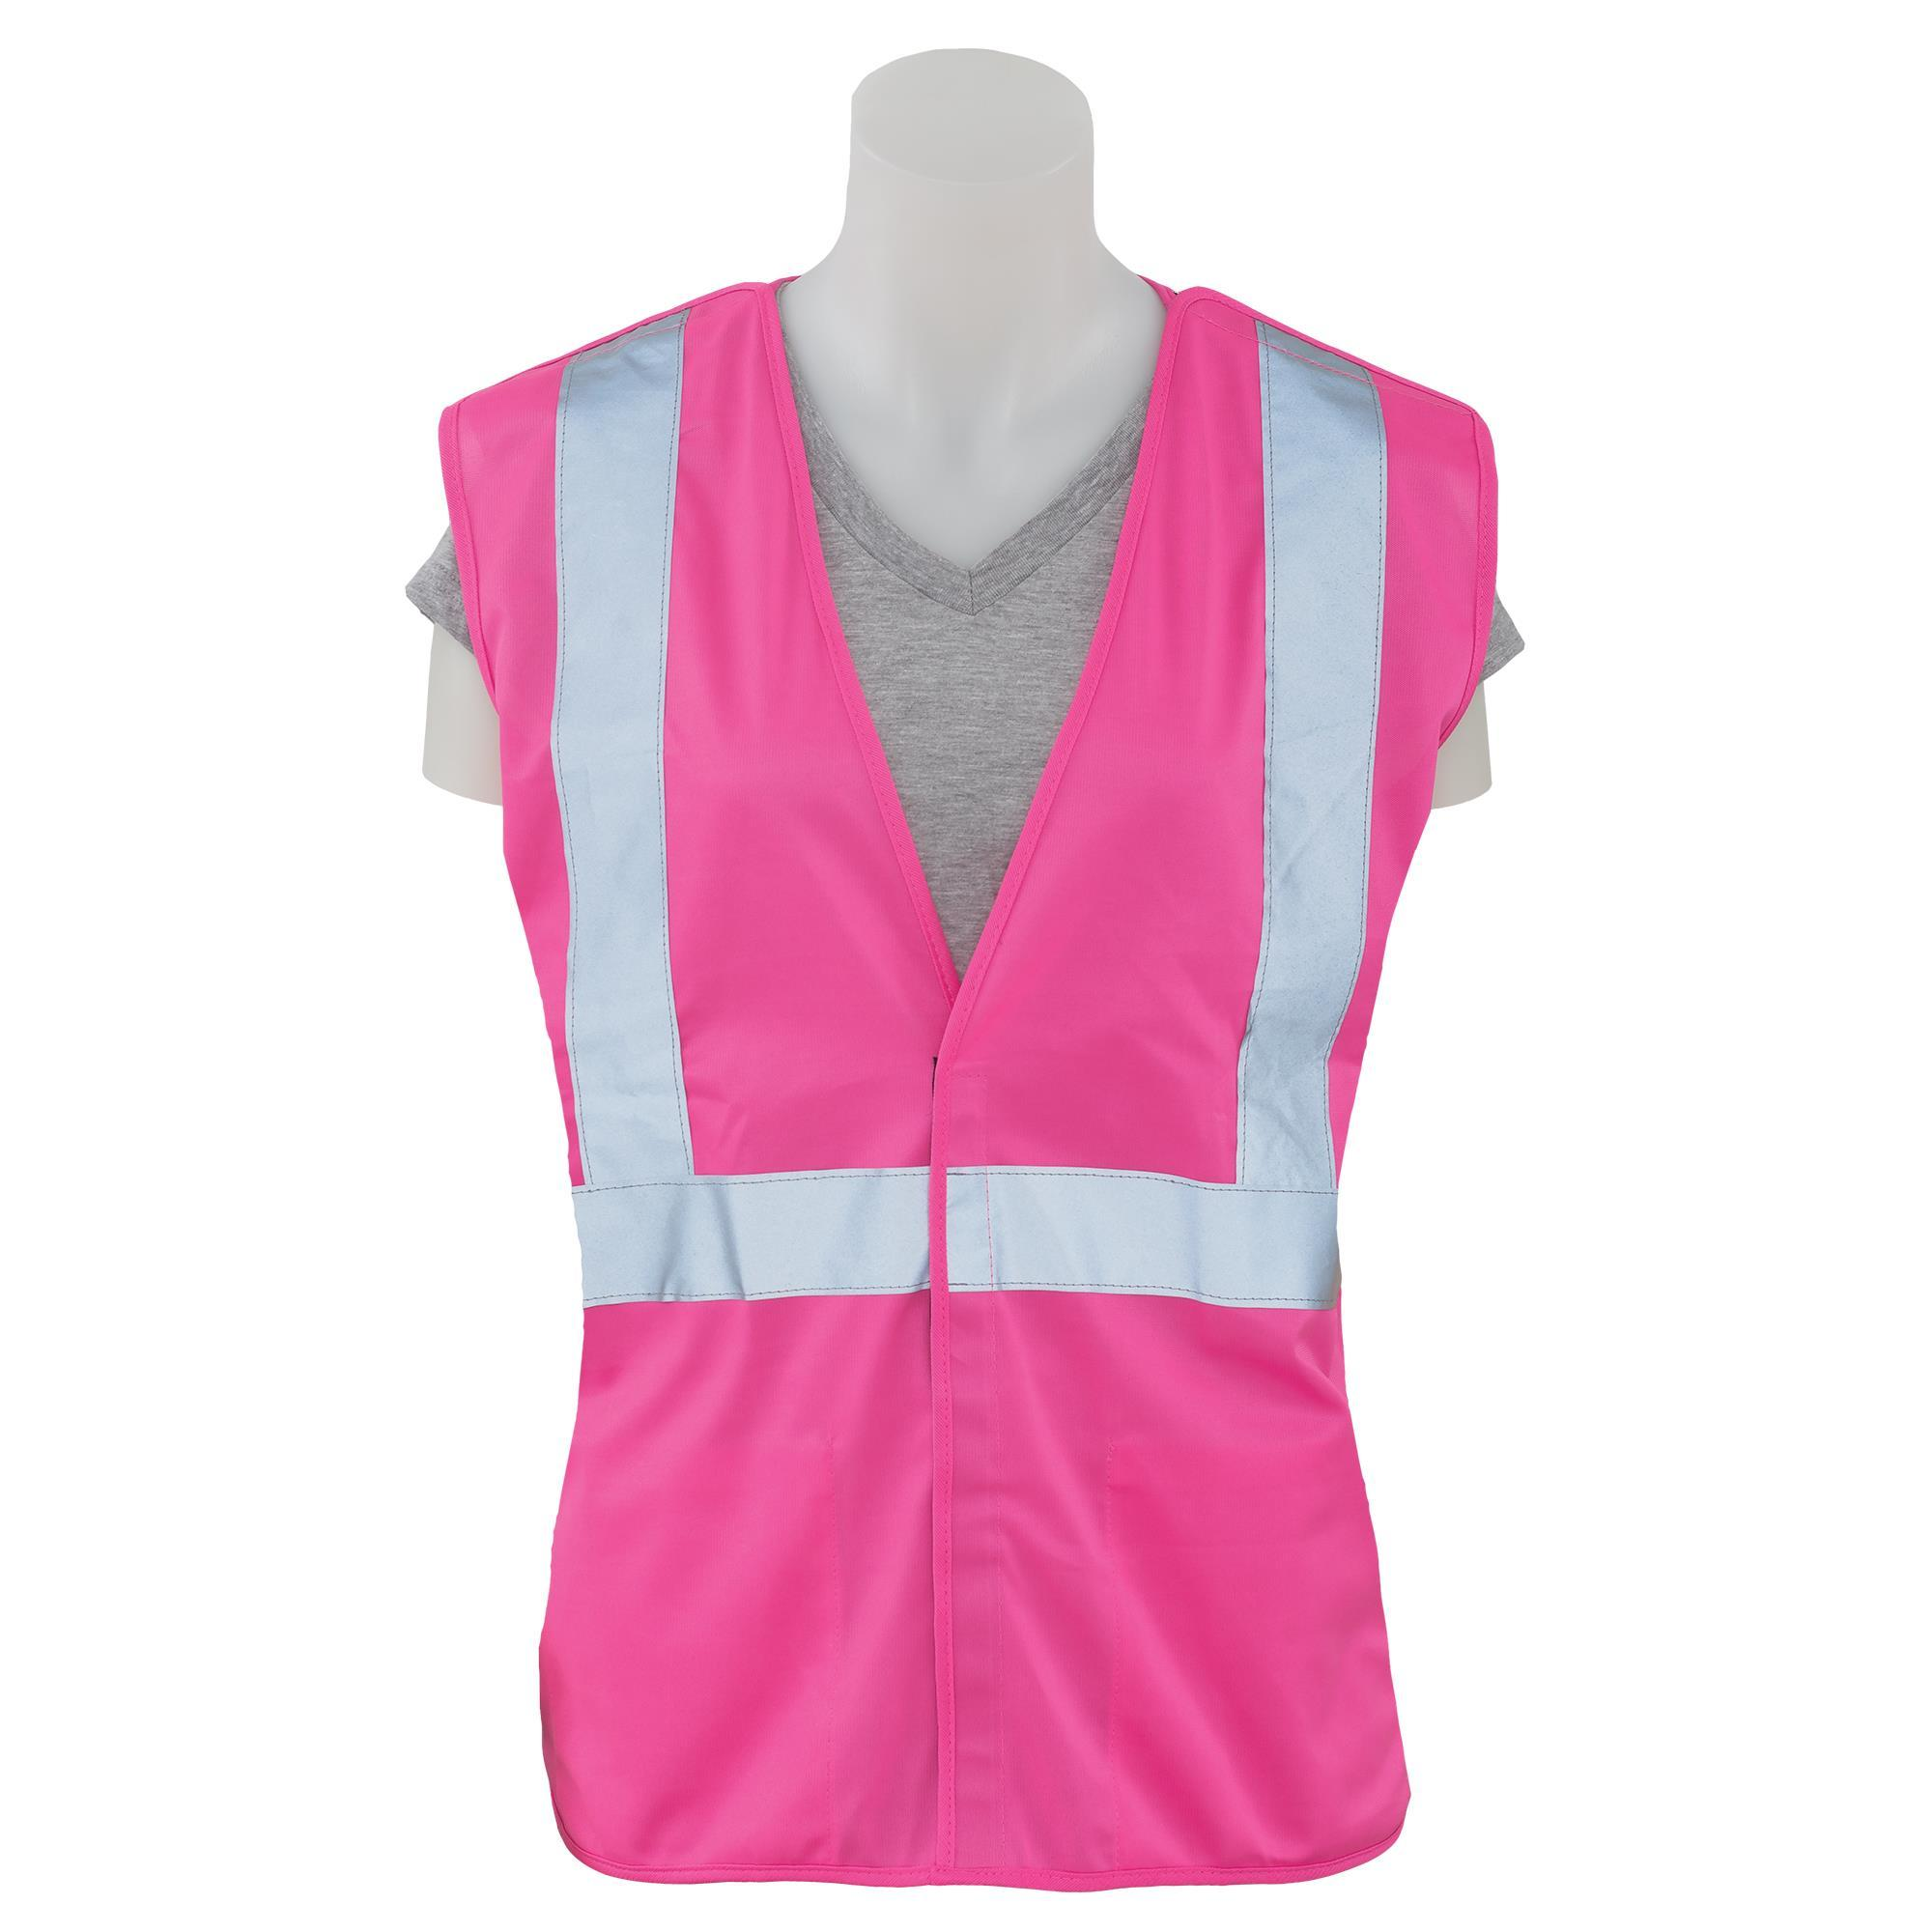 S725 Women's Break-Away Vest - Non-ANSI